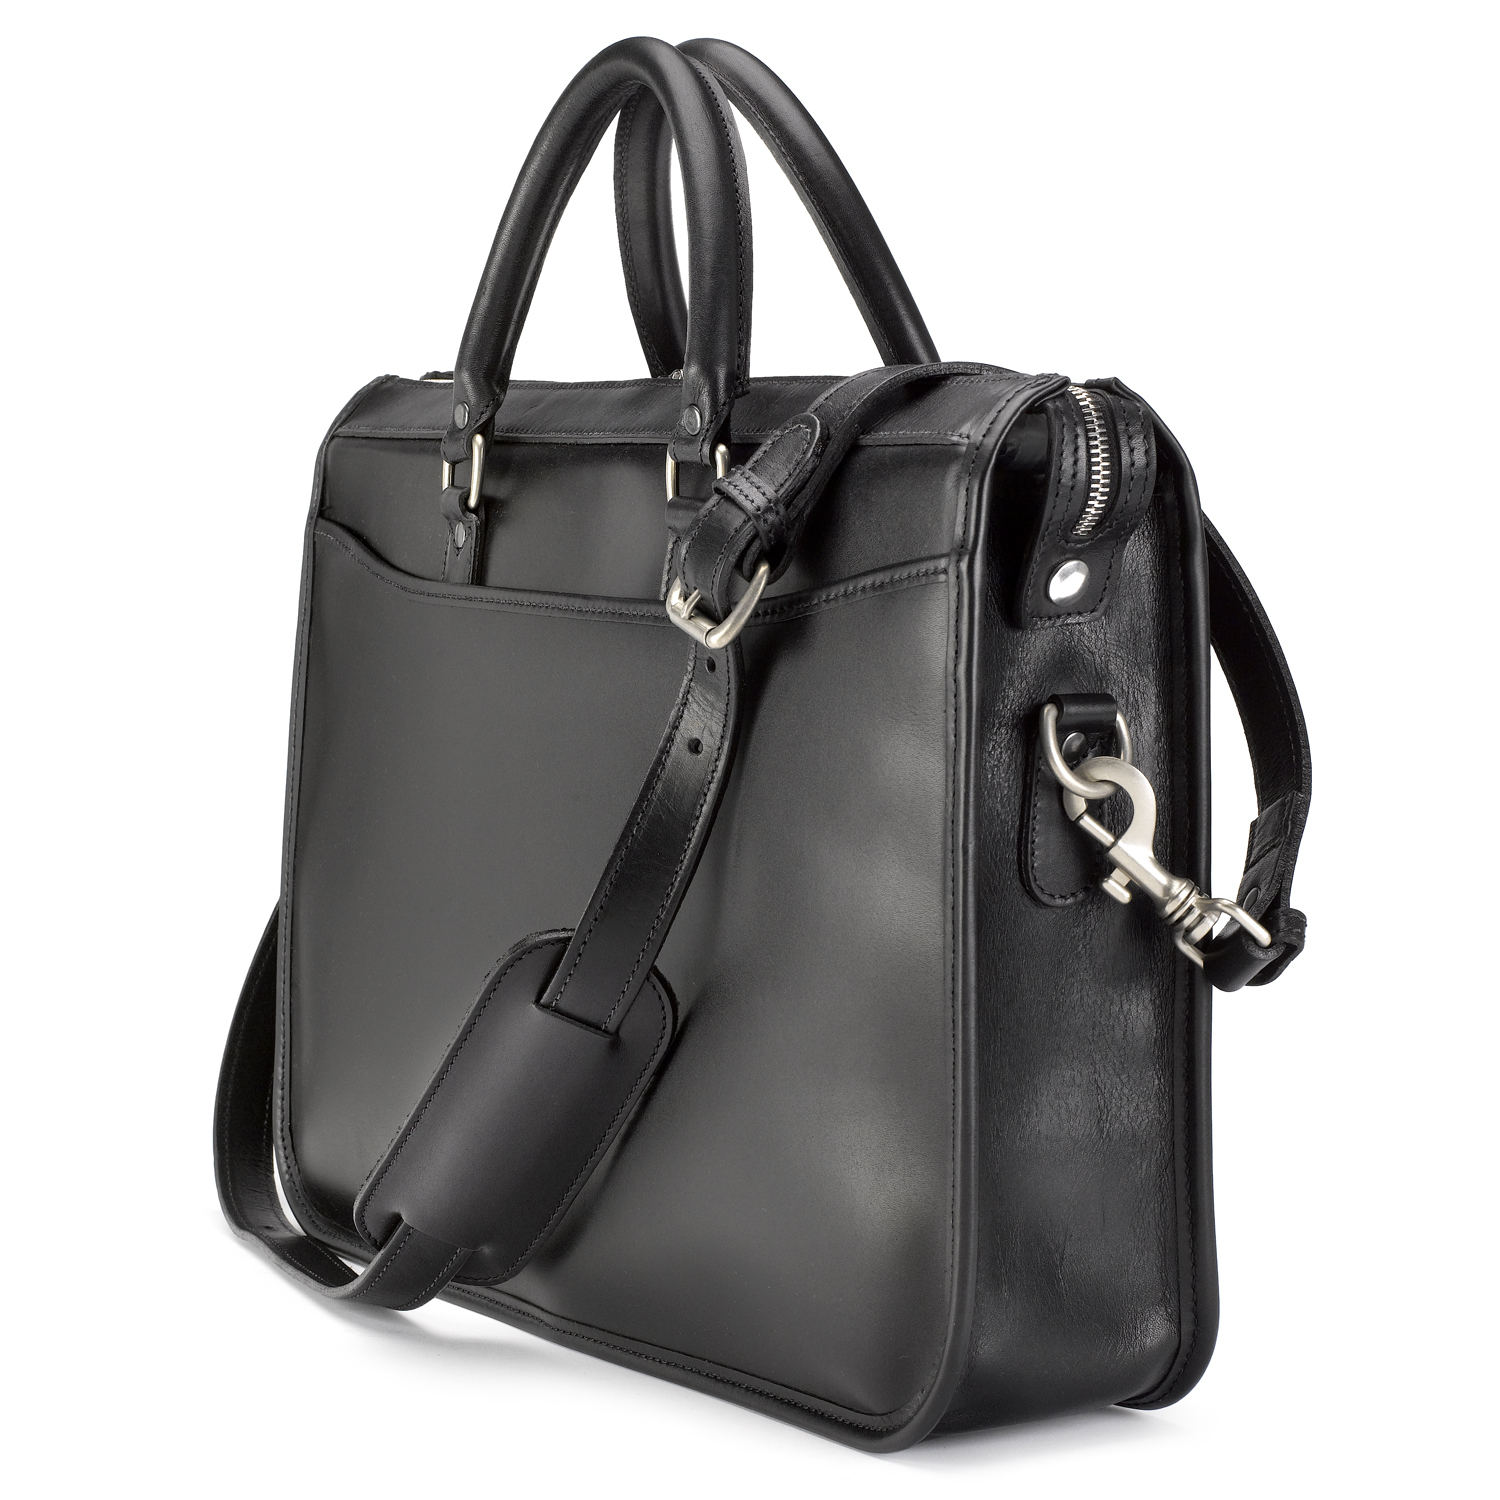 Tusting Marston Leather Briefcase in Black